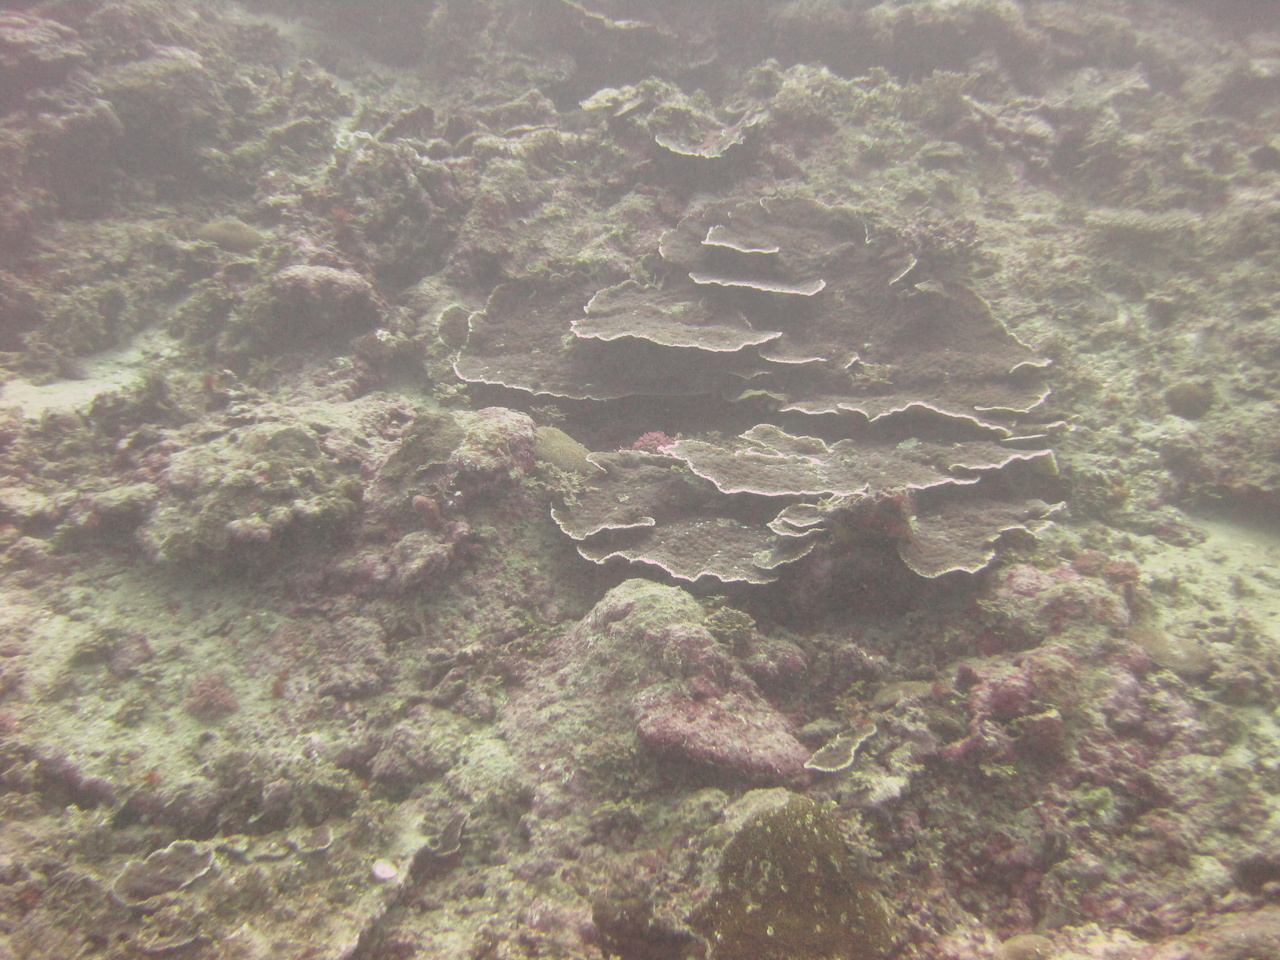 A coral reef in Faga'alu Bay in Tutuila, 2012, before mitigation measures were implemented to minimize sedimentation. Photo: NOAA Fisheries.